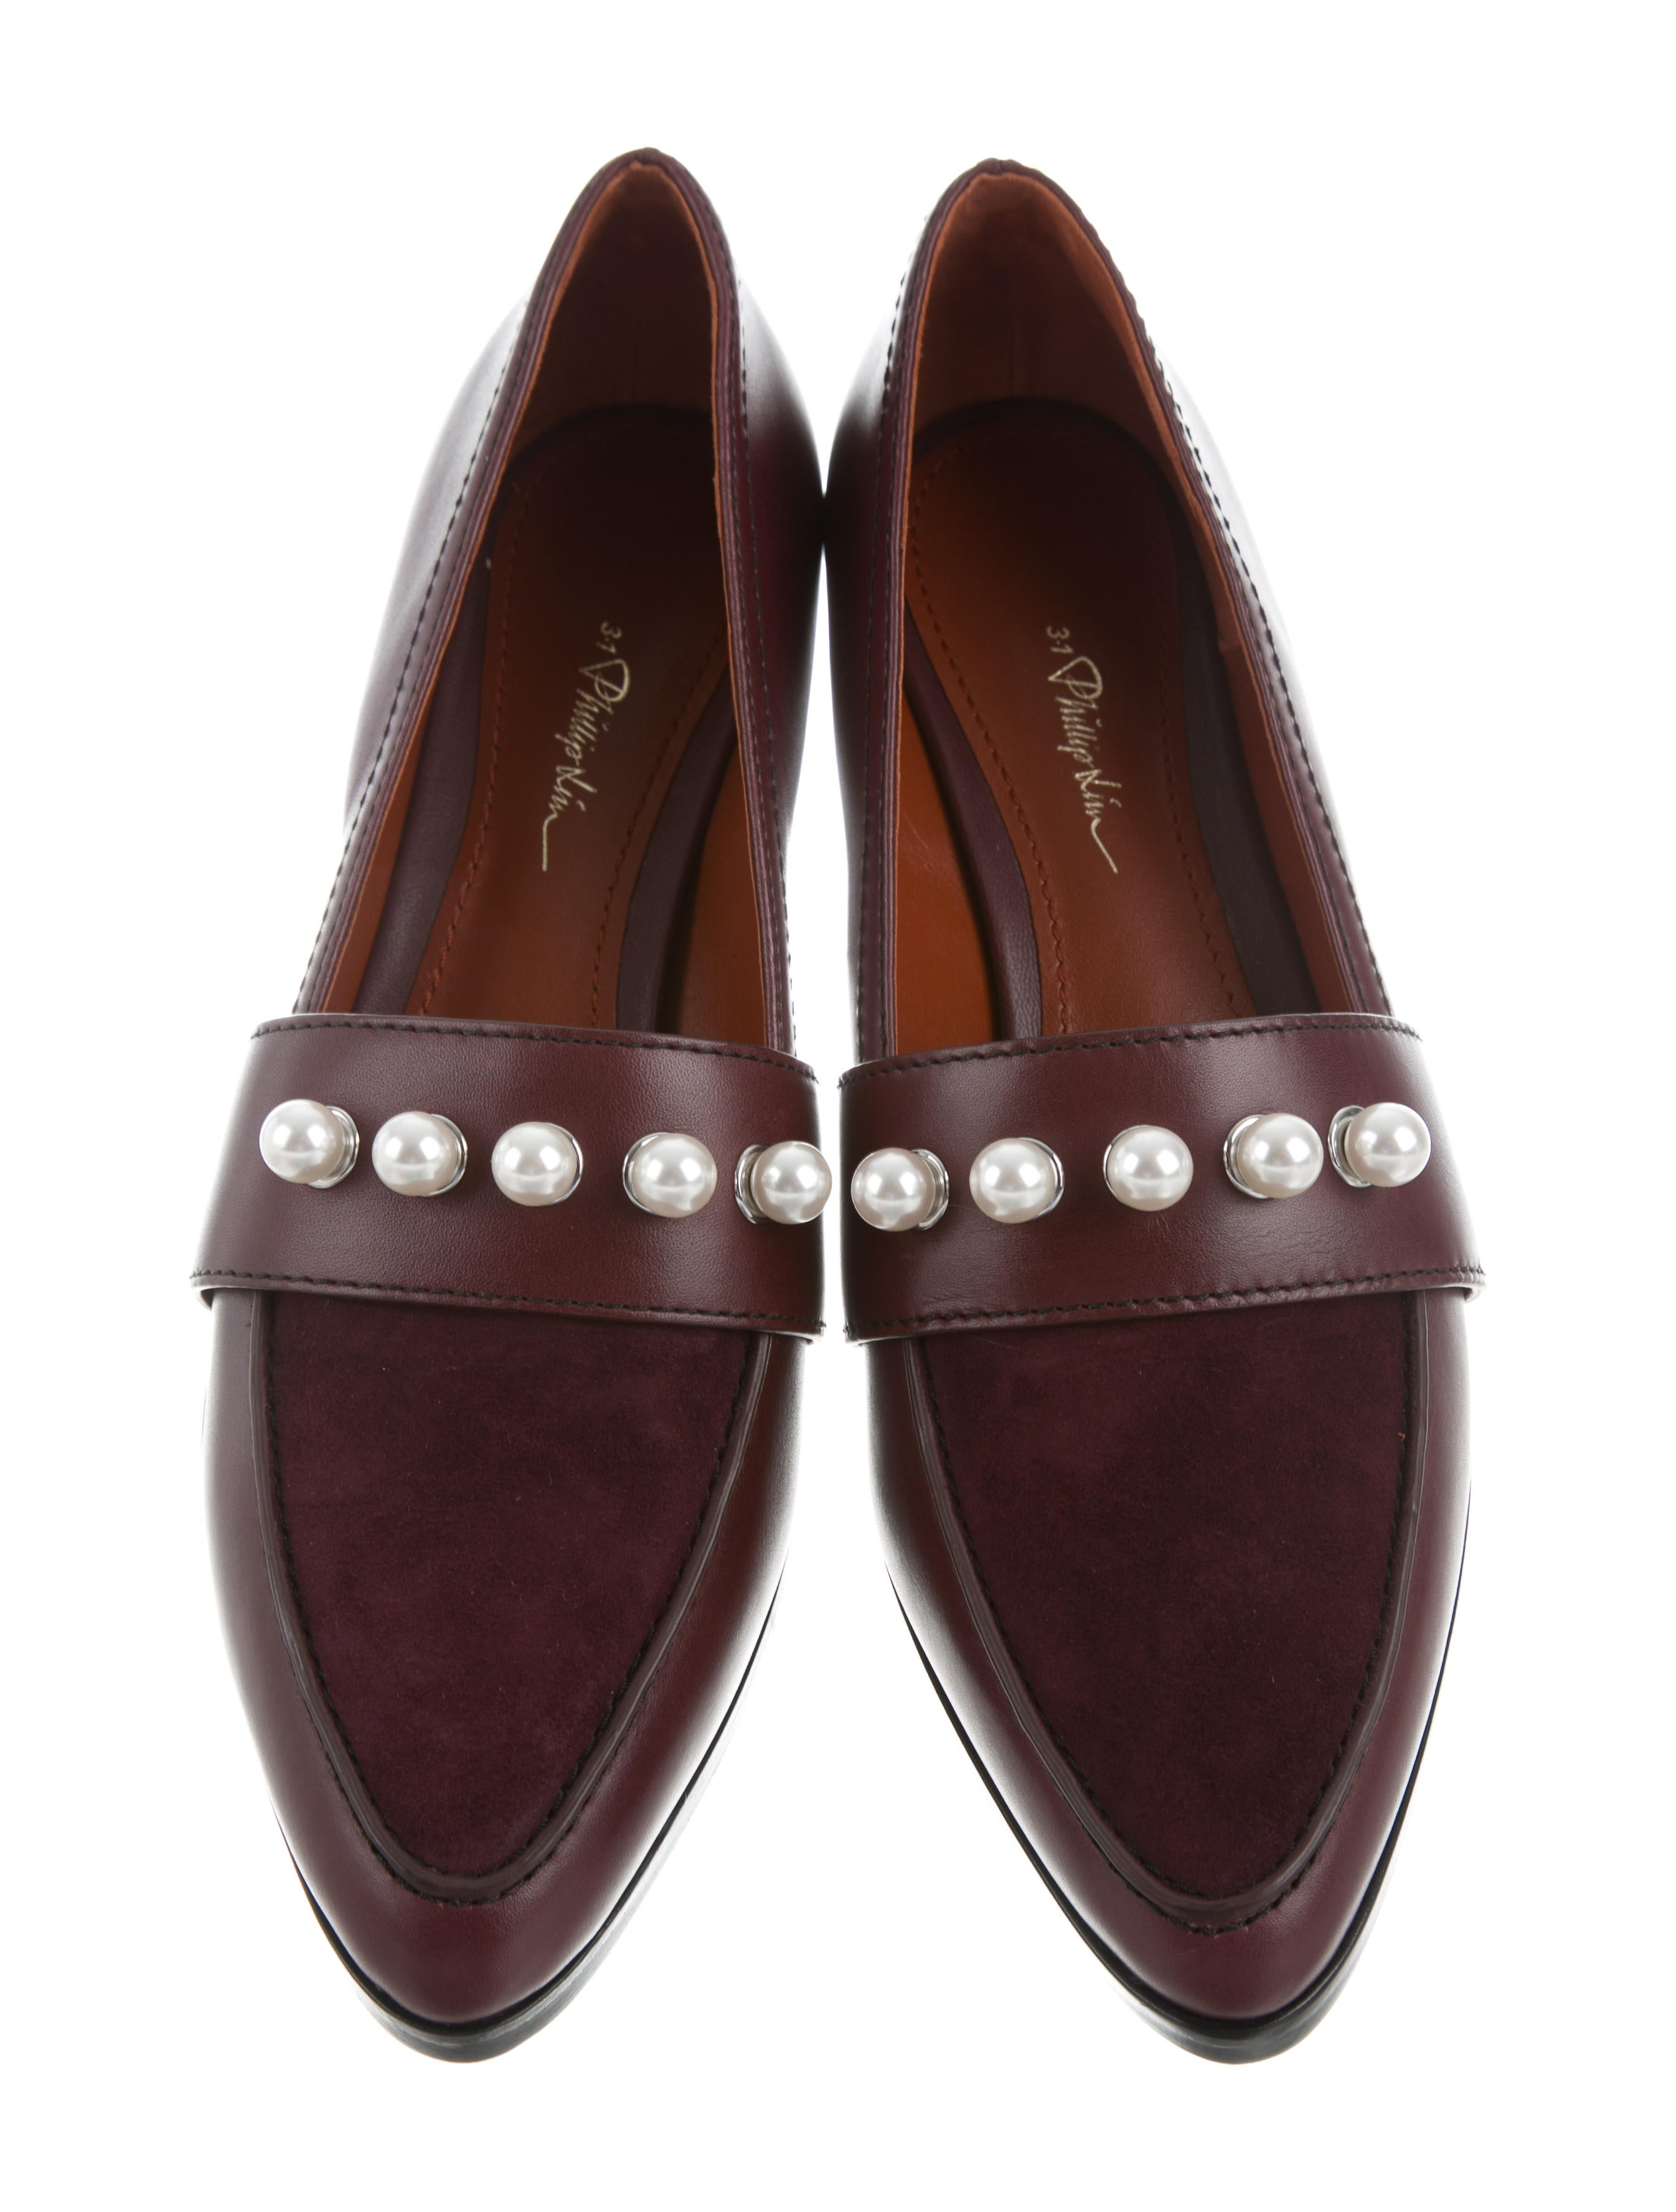 3.1 Phillip Lim Quinn Pearl-Embellished Loafers w/ Tags buy online with paypal z7JGiOG